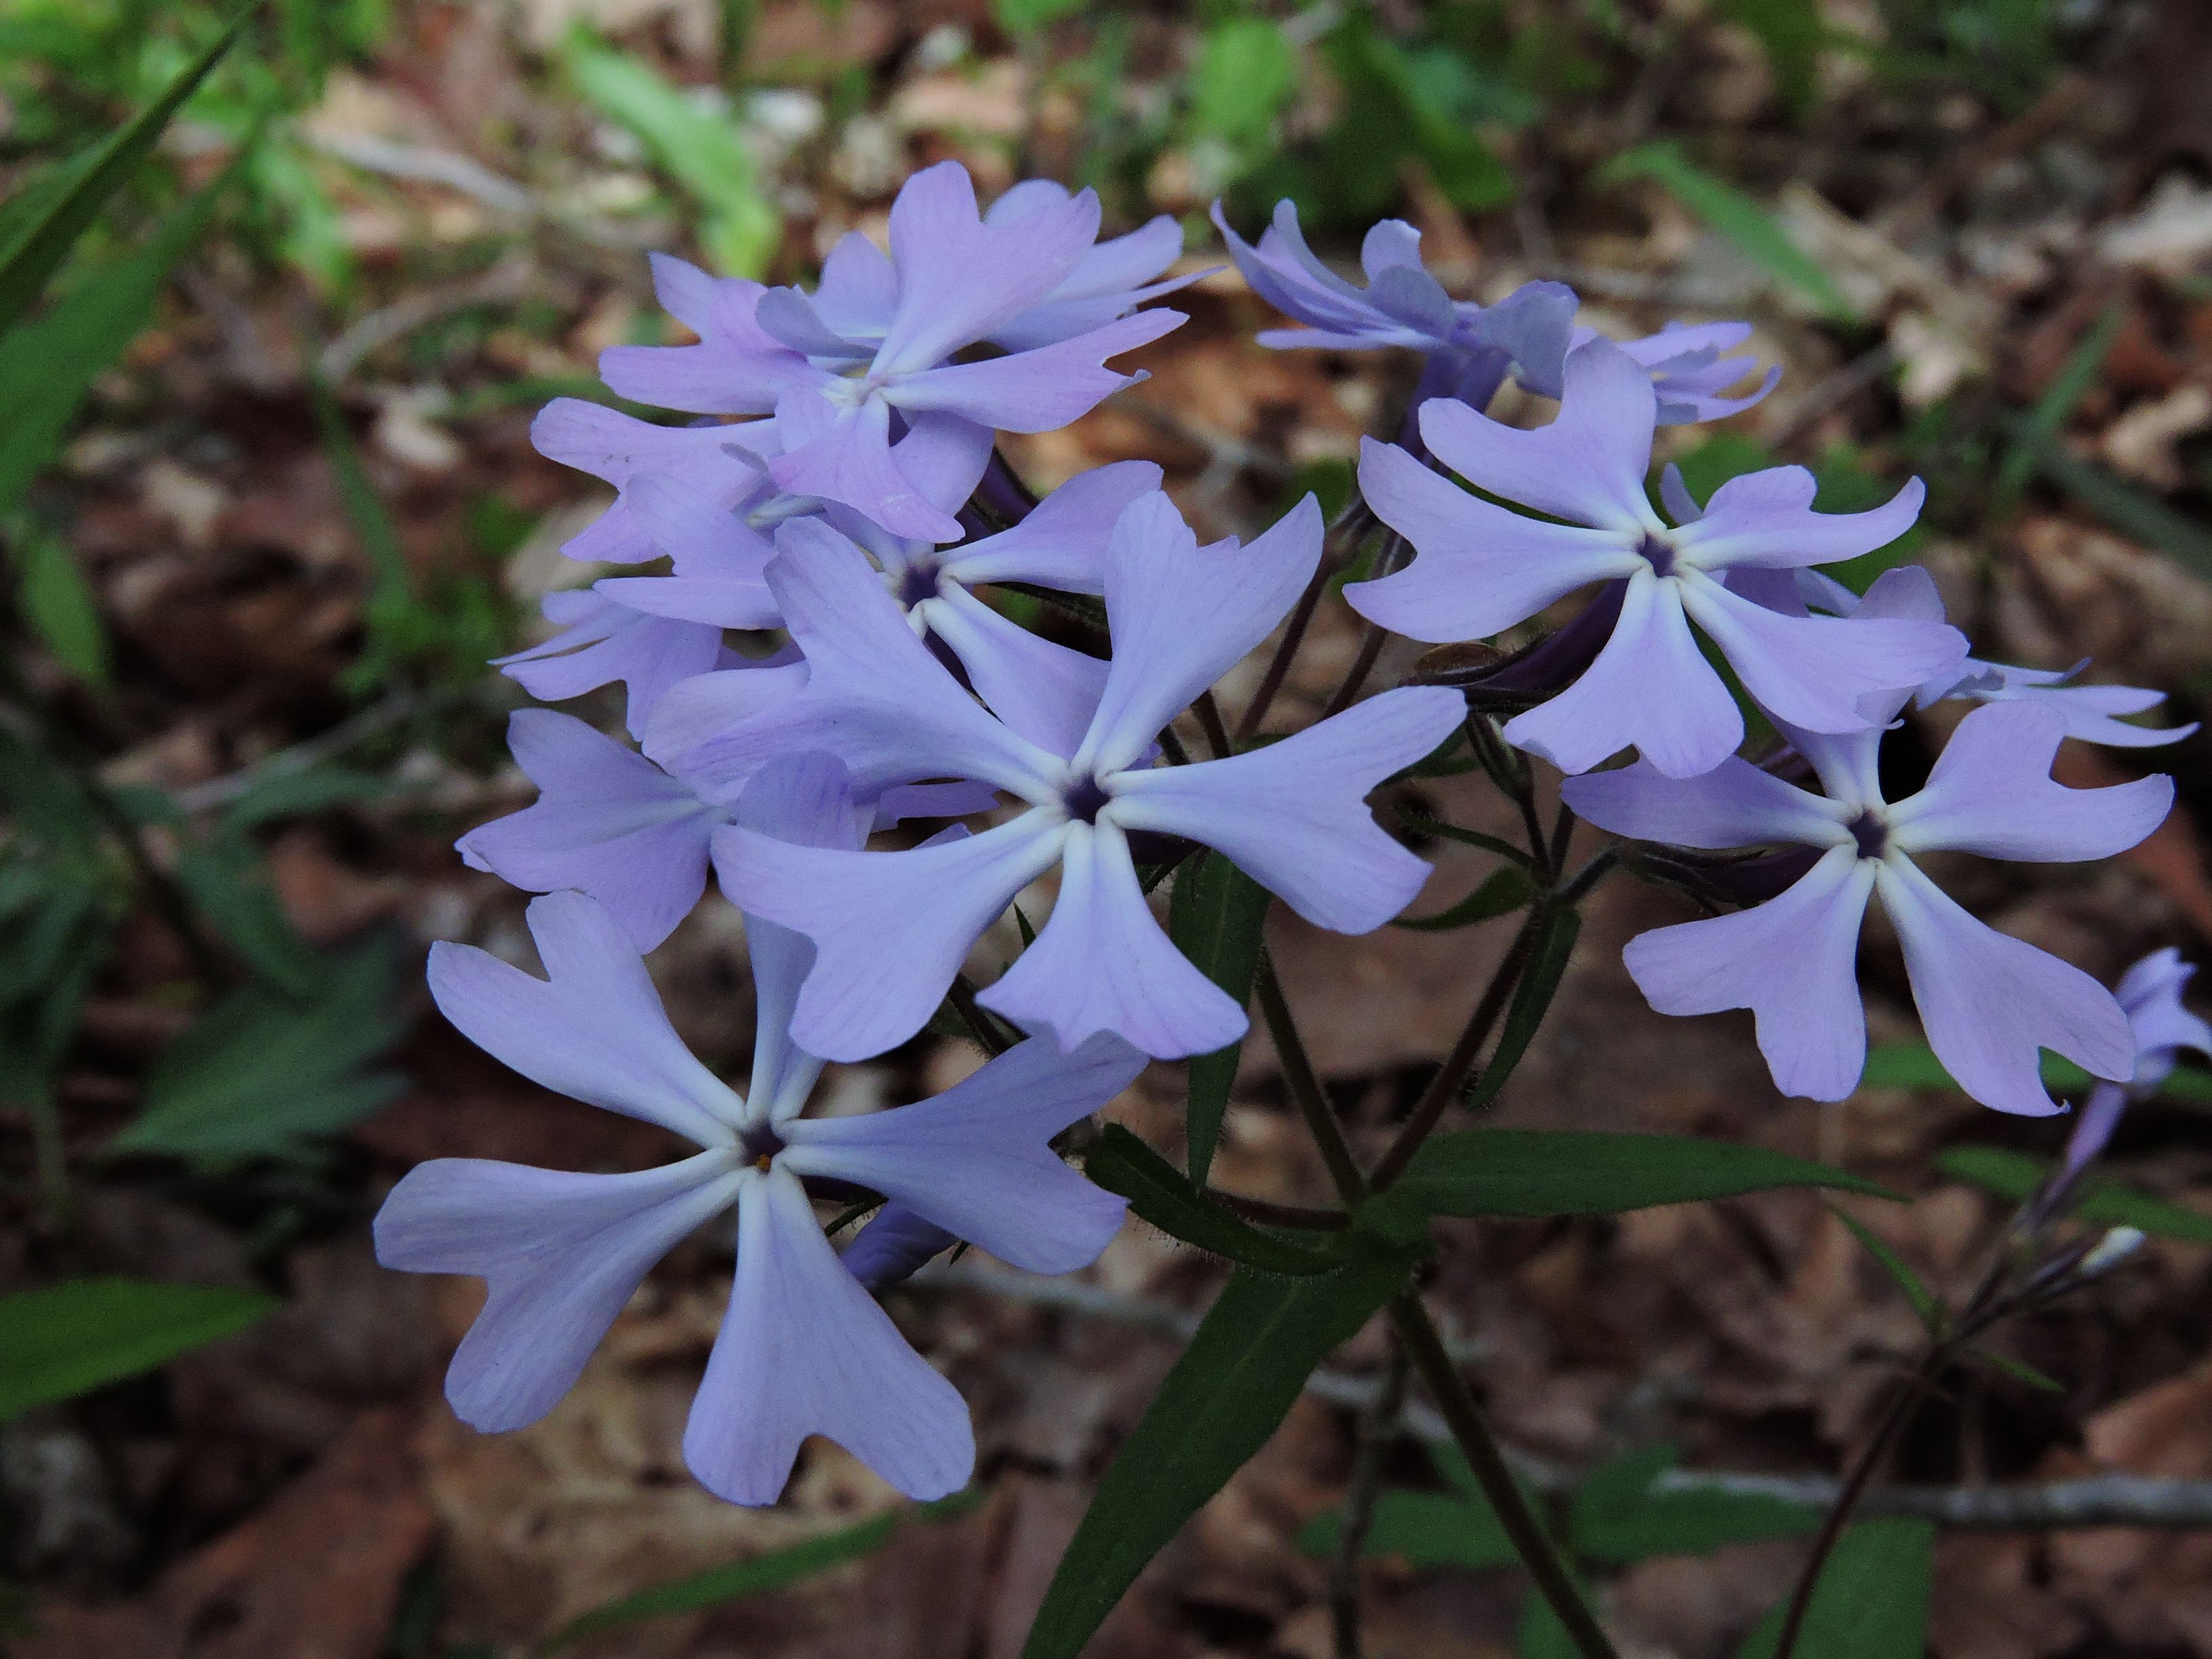 Periwinkle flowers brighten a leafy forest floor.